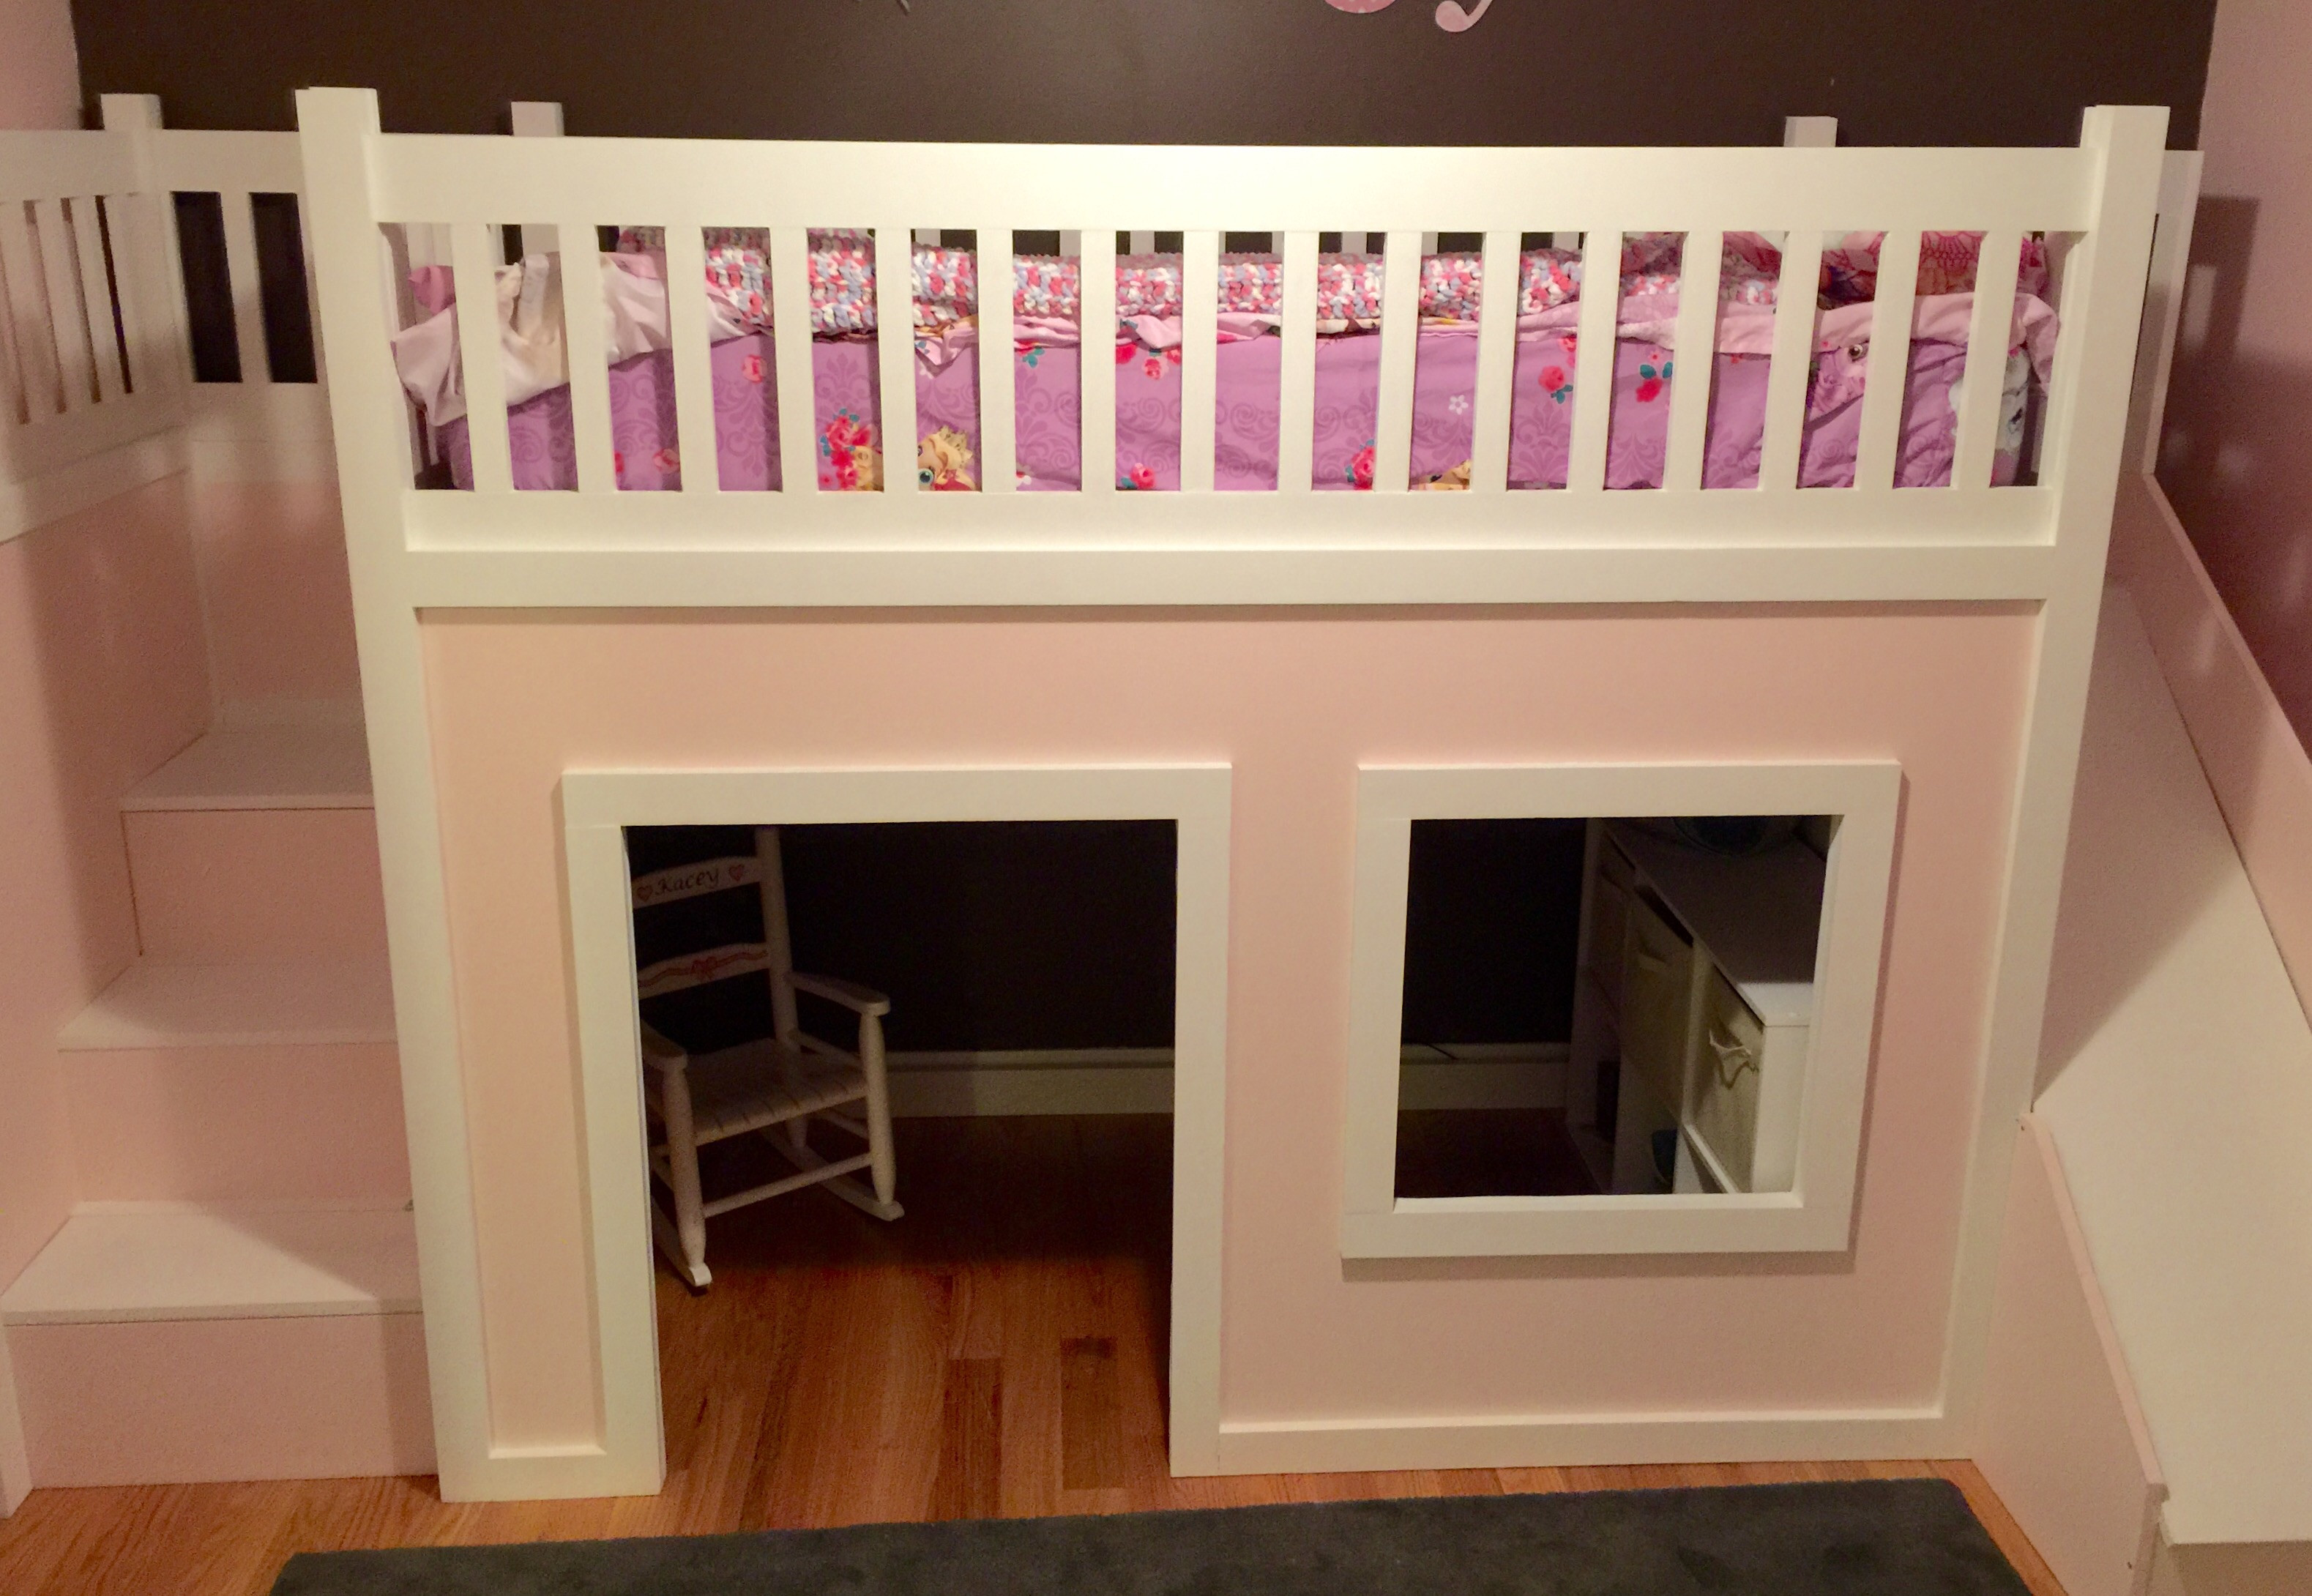 Best ideas about DIY Loft Bed With Stairs . Save or Pin Ana White Now.